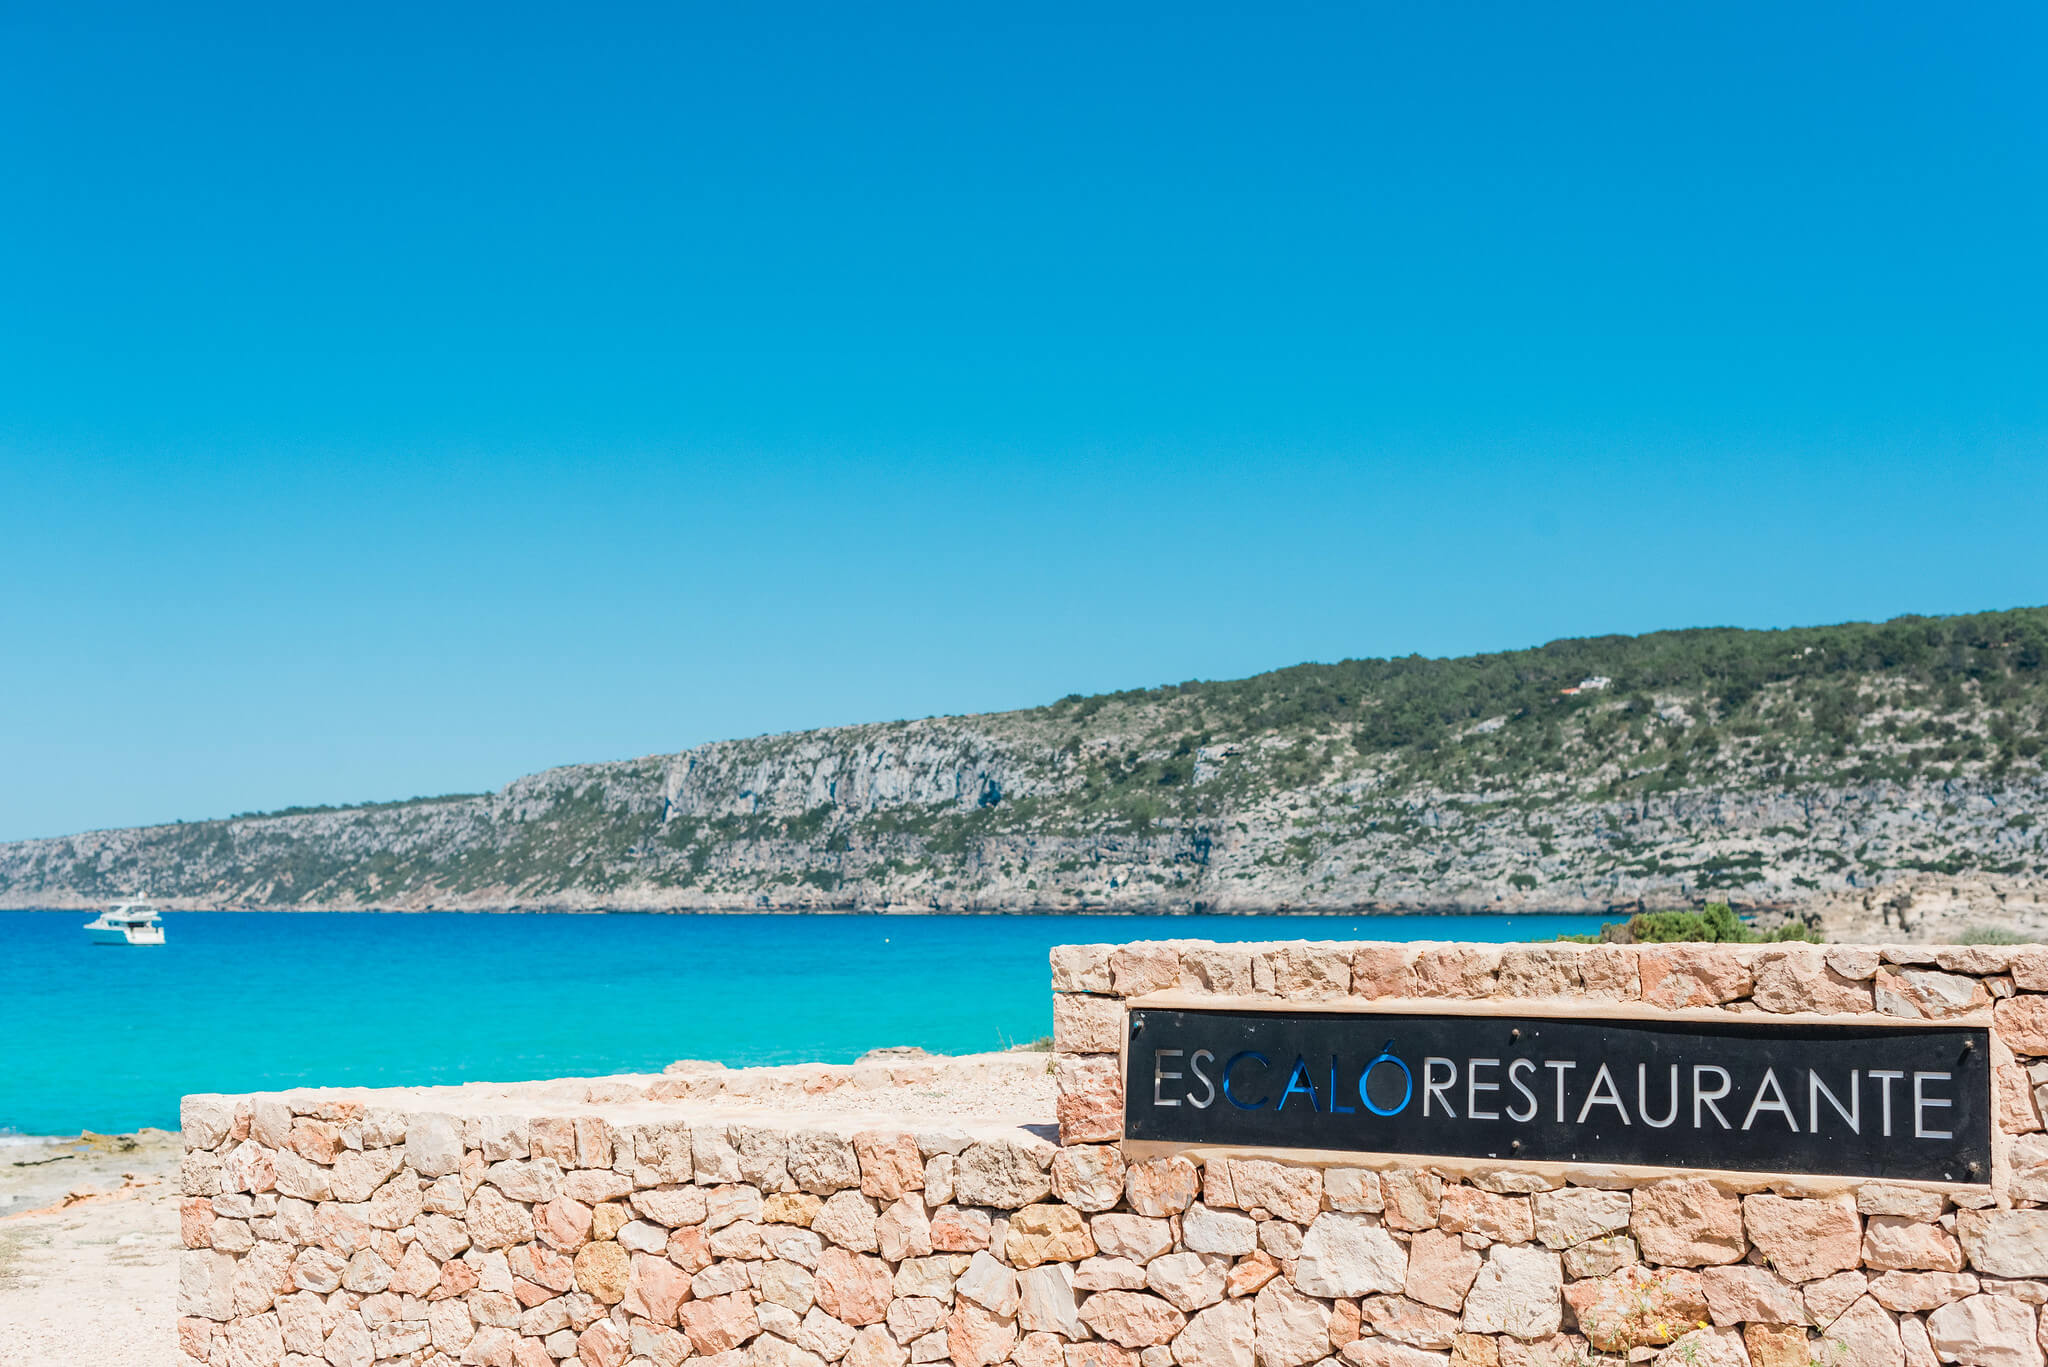 https://www.white-ibiza.com/wp-content/uploads/2020/03/formentera-beach-restaurants-es-calo-2020-02.jpg